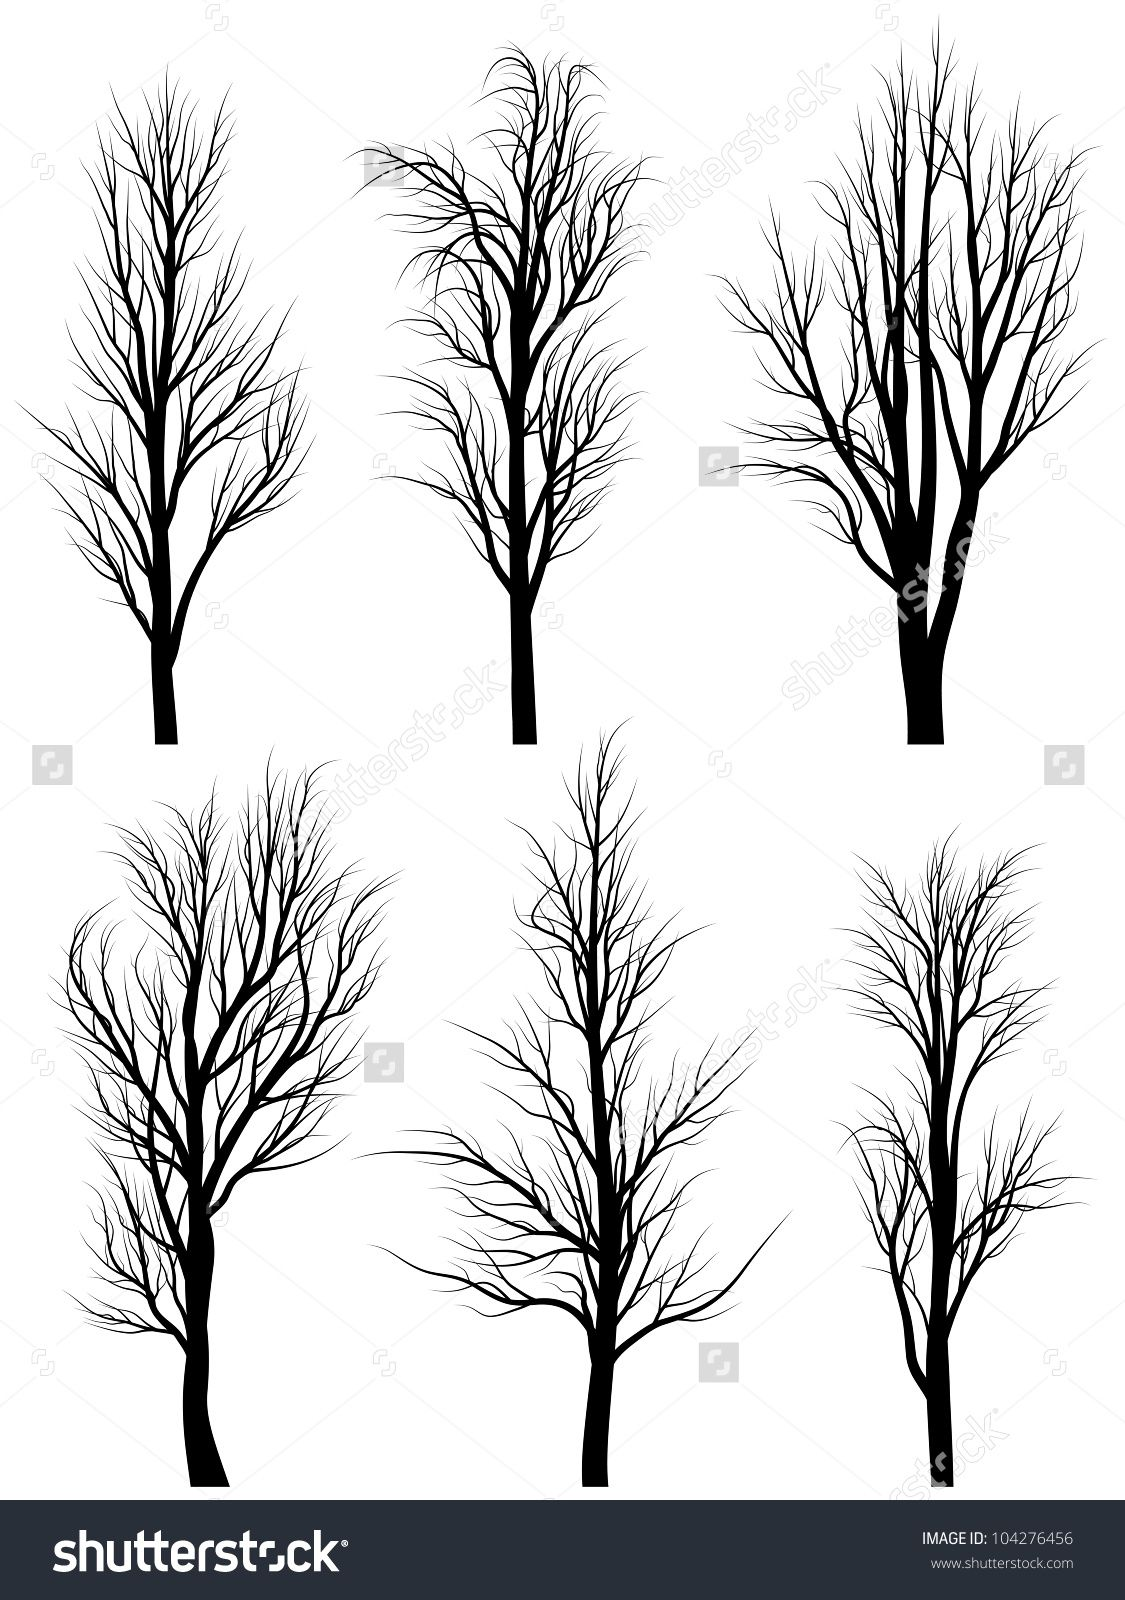 Set Of Vector Silhouettes Of Birch Trees Without Leaves During The Winter Or Spring Period Birch Tree Tattoos Tree Art Birch Tree Art